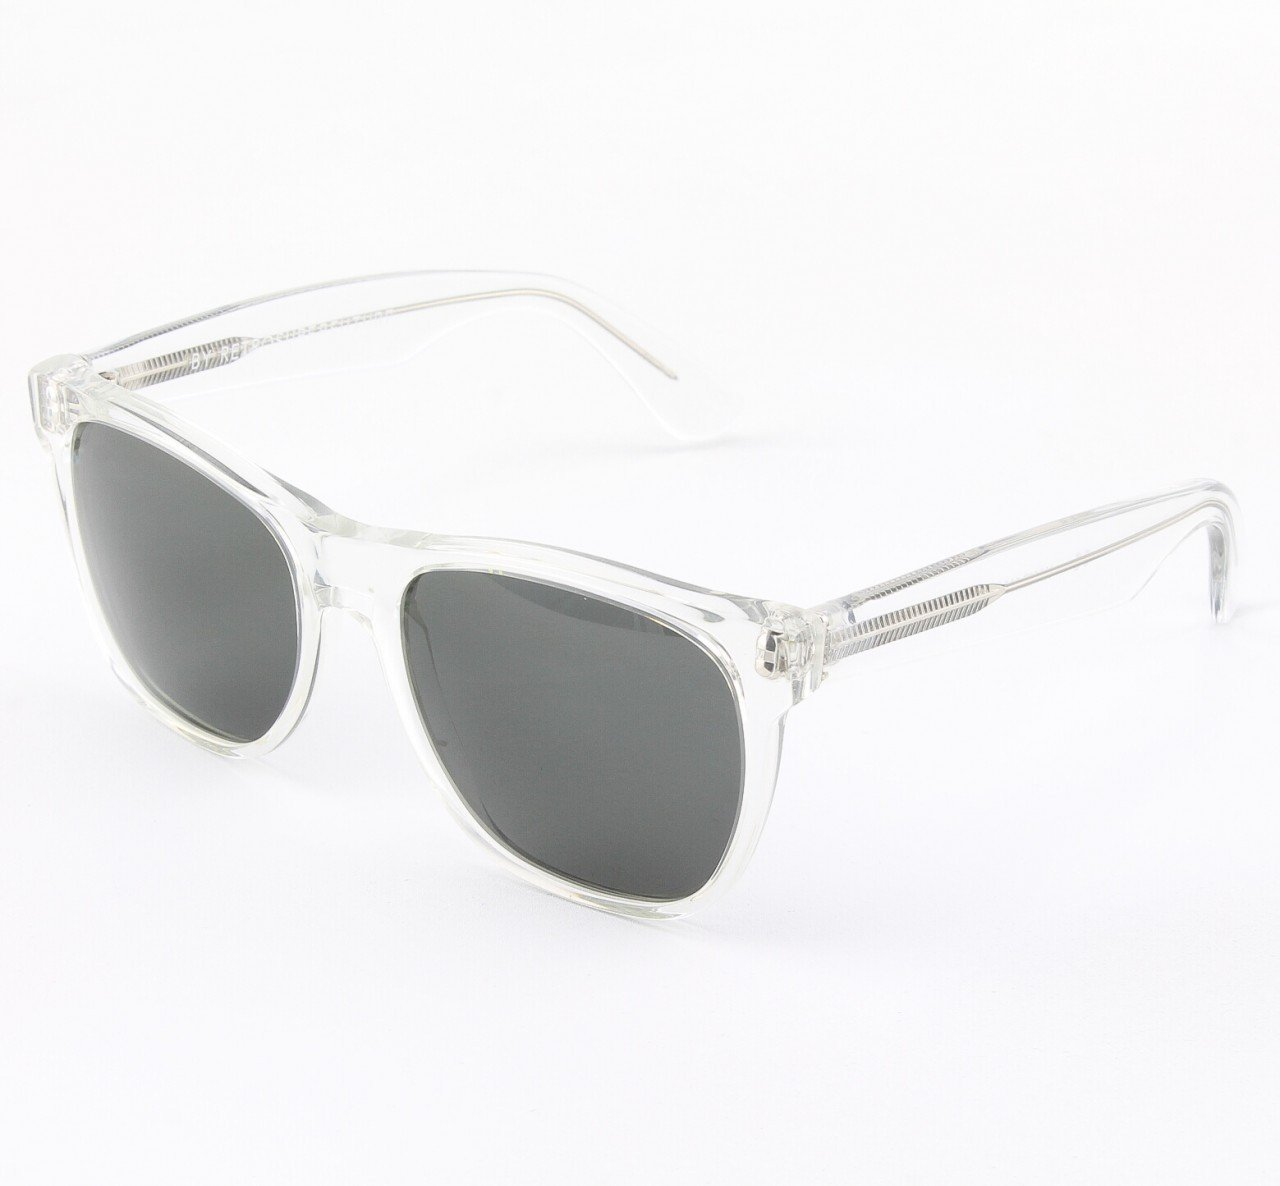 Super Classic 015/3T Sunglasses Crystal with Grey Zeiss Lenses by RETROSUPERFUTURE